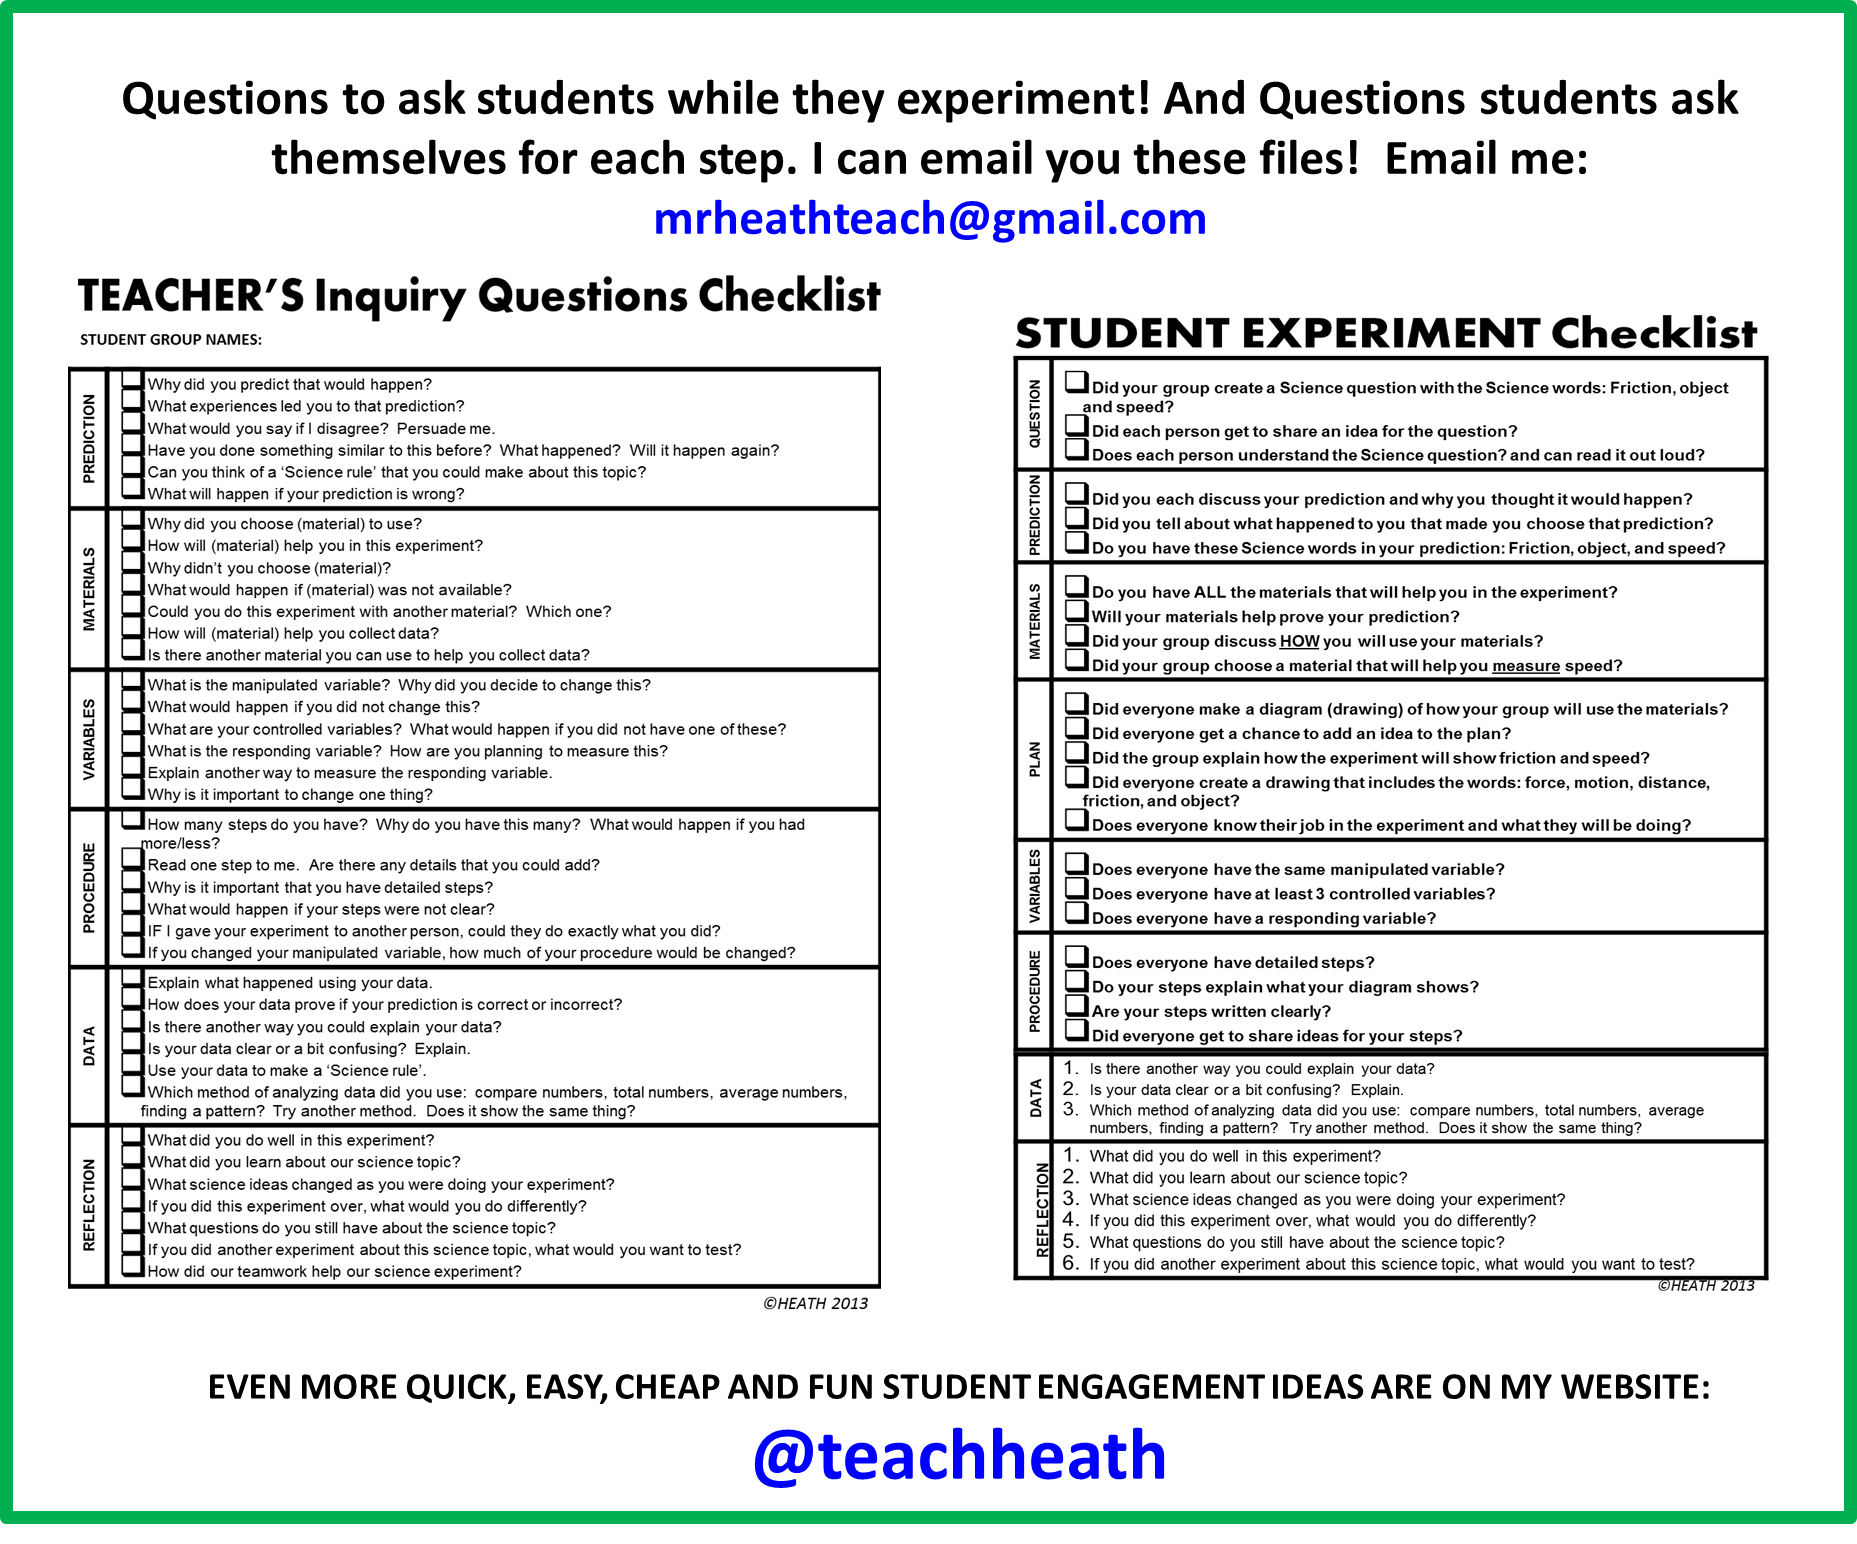 Questions For Teachers To Ask Students Or For Students To